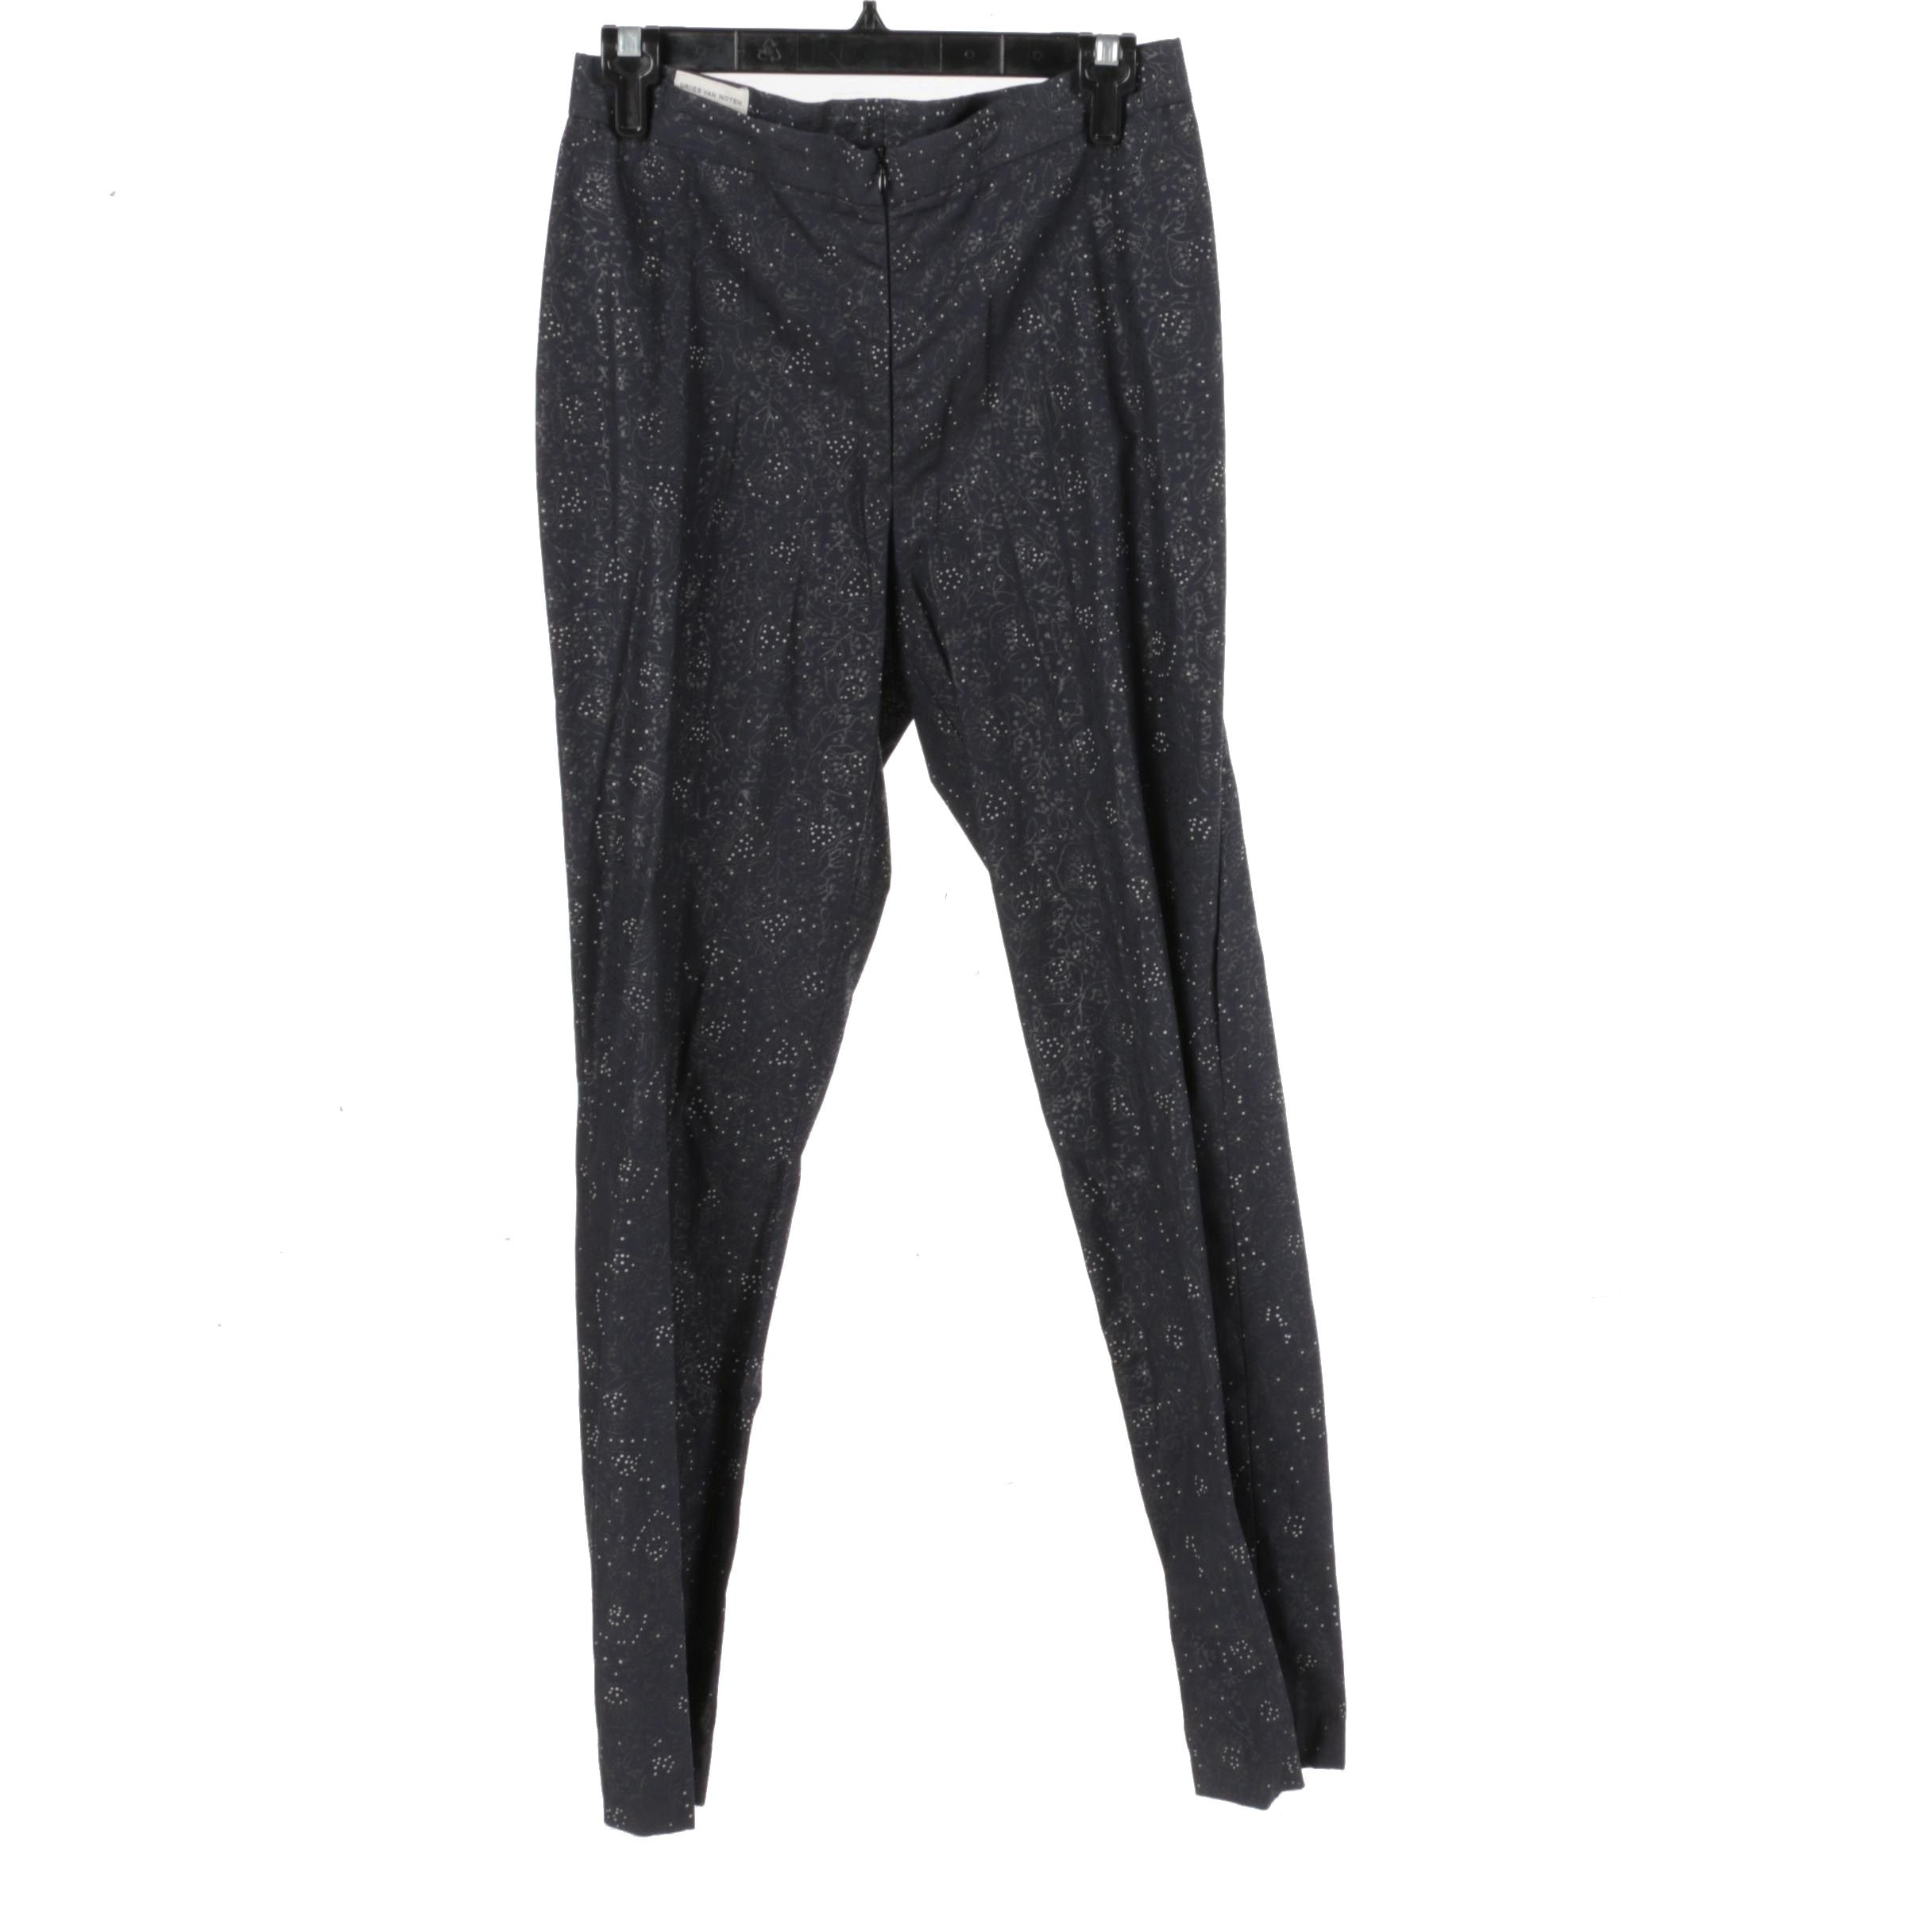 Women's Dries Van Noten Pants